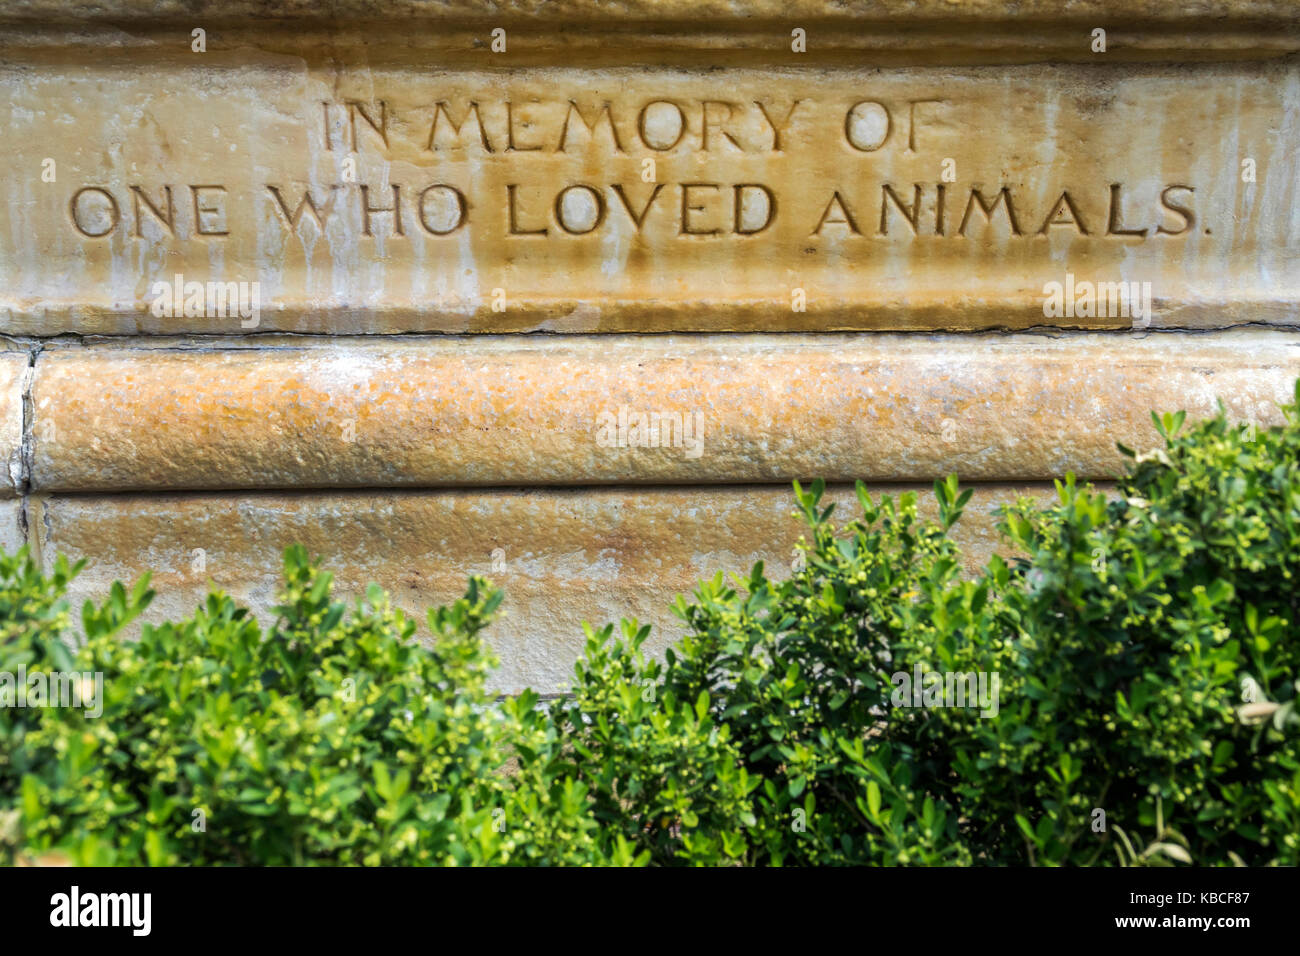 Richmond Virginia Shockoe Slip district Morgan Fountain inscription In memory of one who loved animals - Stock Image